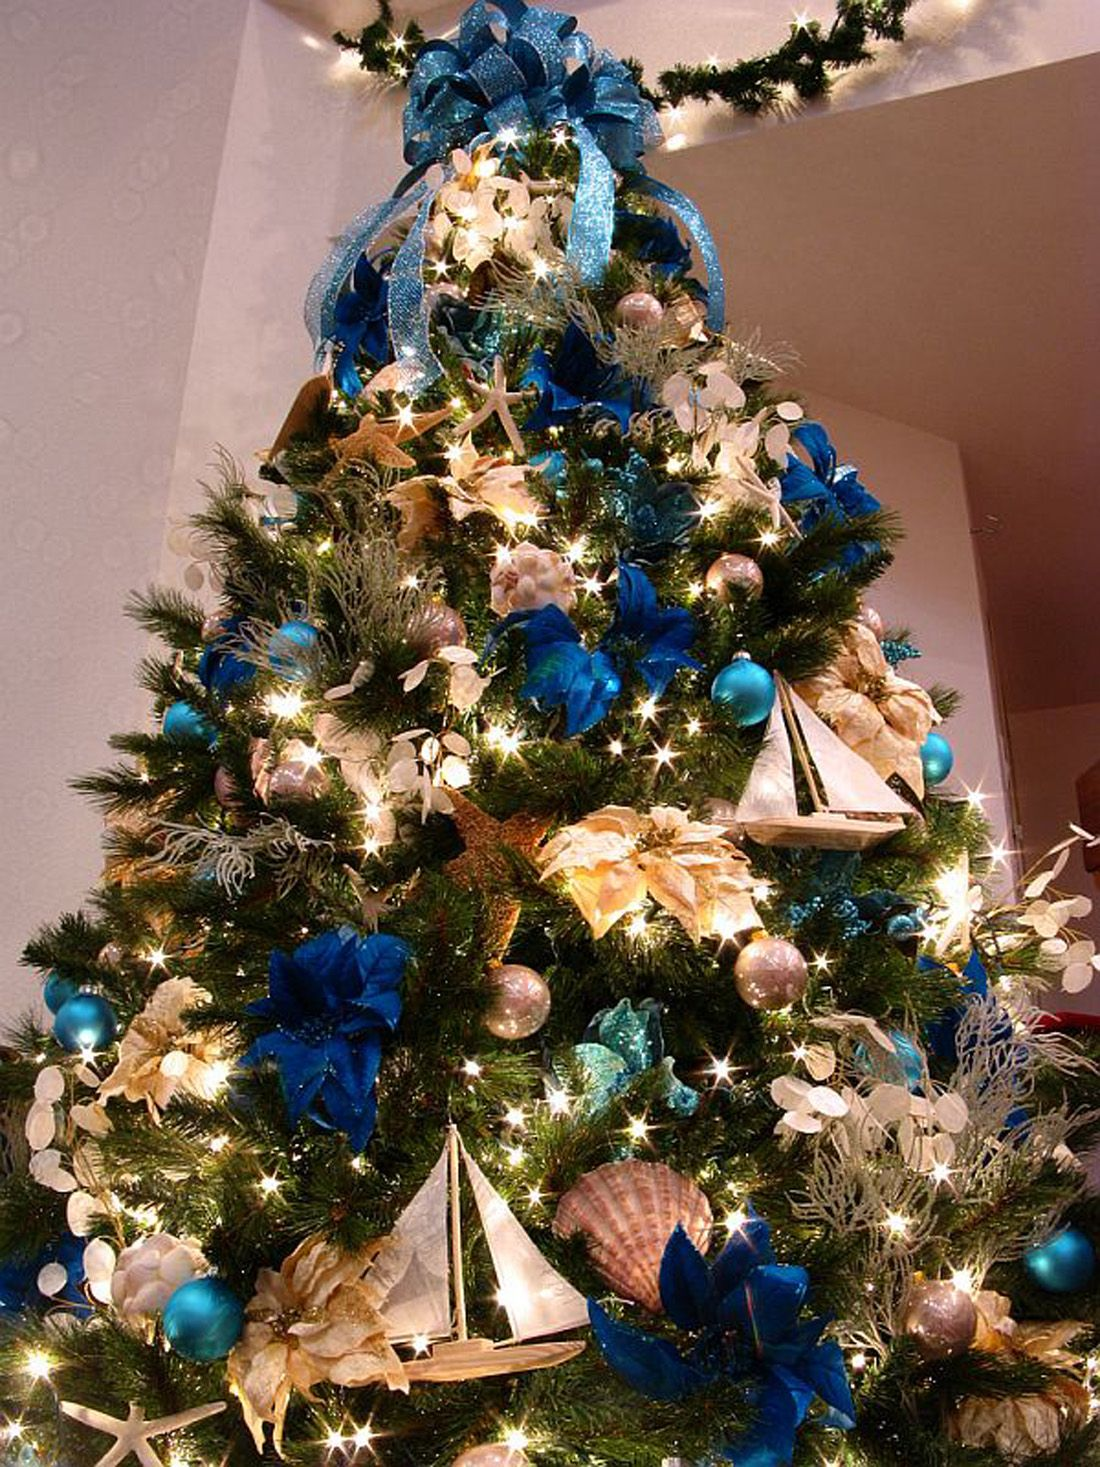 Blue and purple christmas tree decorations - Browse These Beautiful And Amazing Christmas Tree Decorating Ideas With Pictures Use These Ideas In Decorating Your Own Christmas Tree